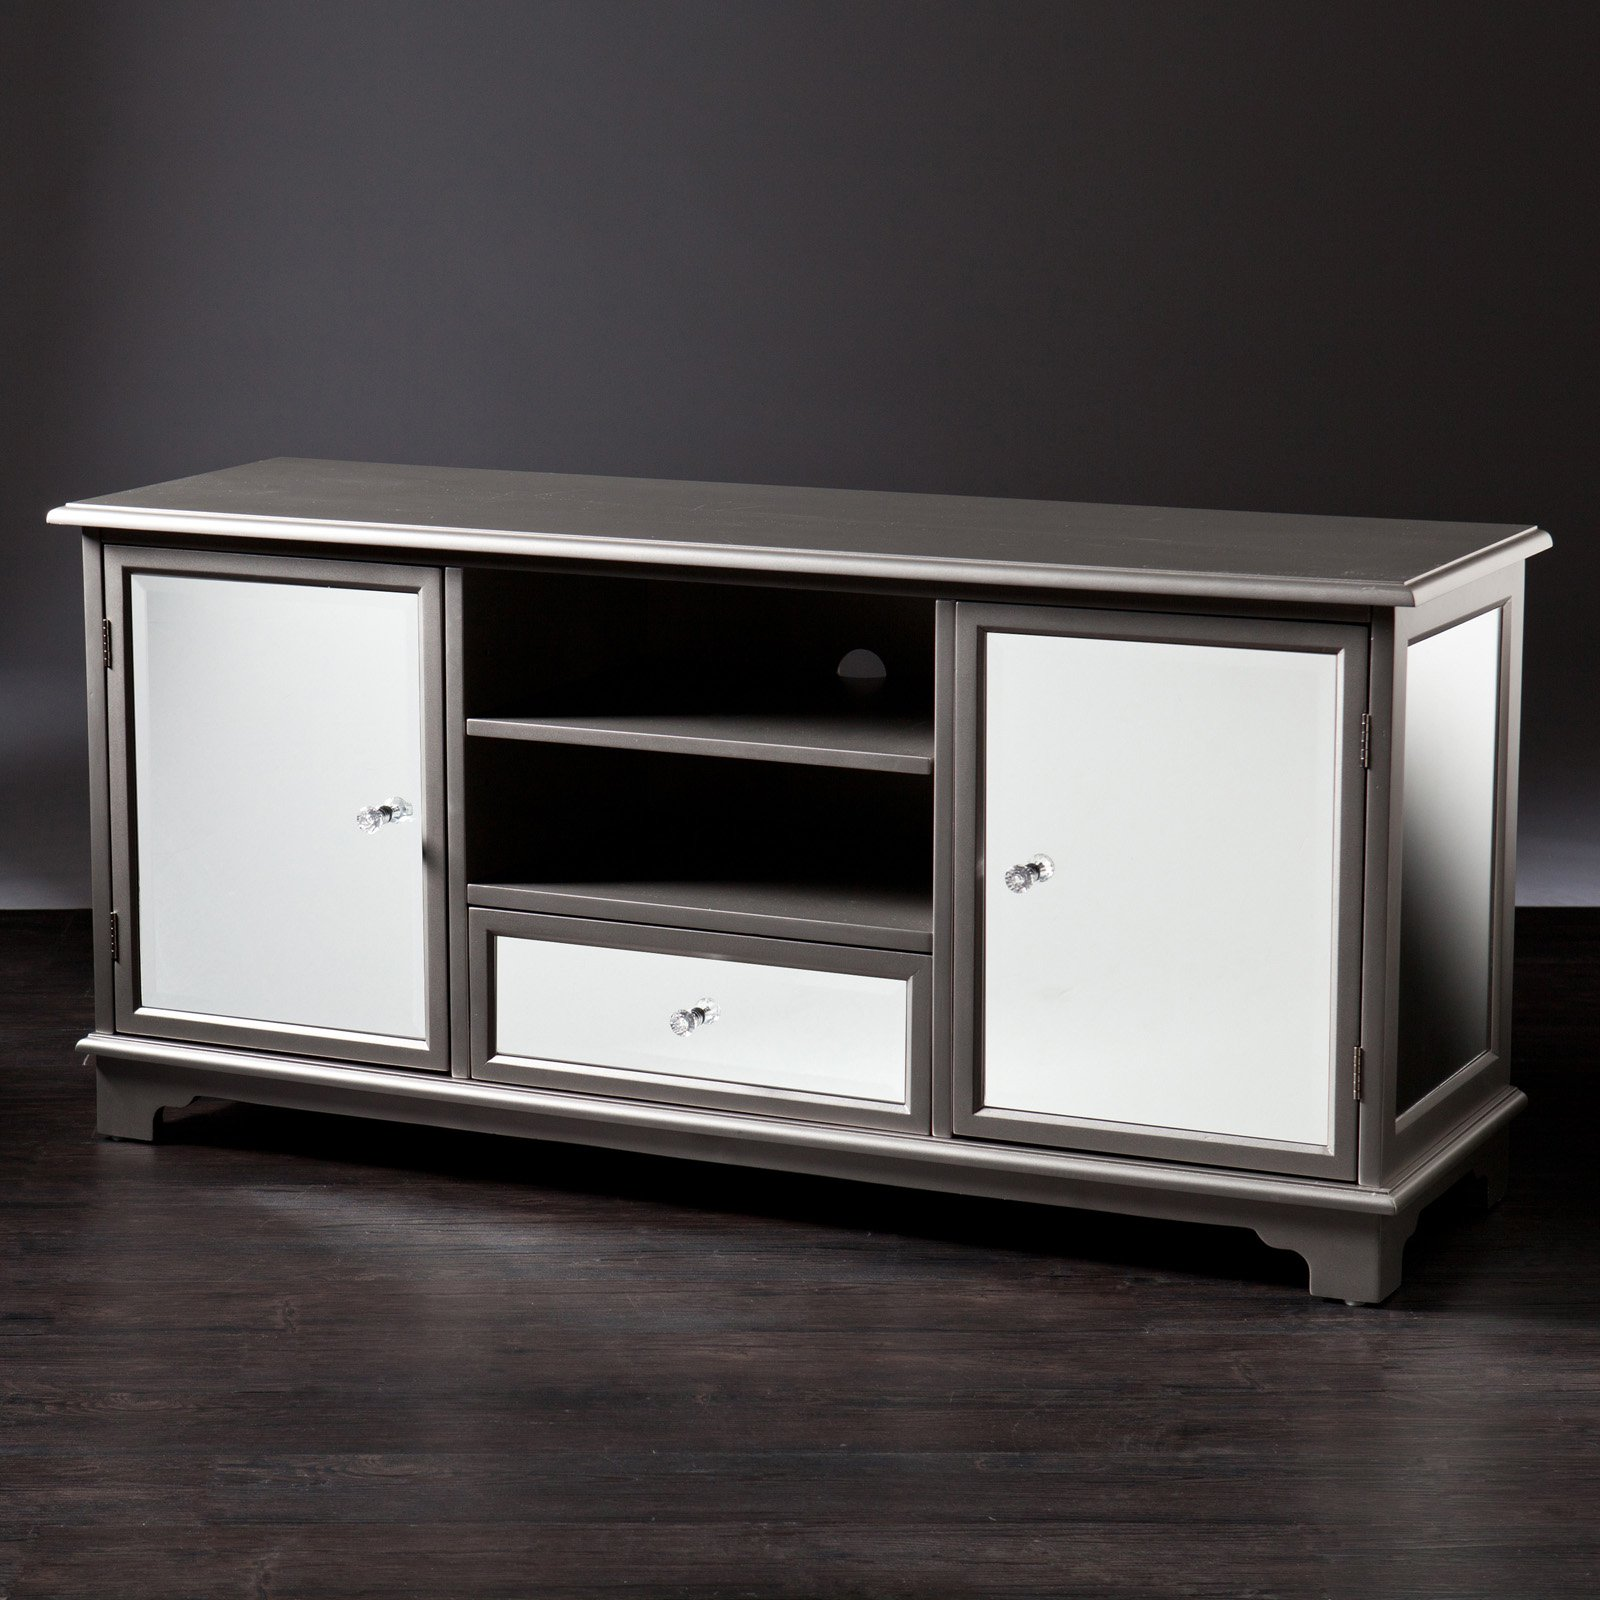 Southern Enterprises Reflection 50 in. TV/Media Stand - Silver